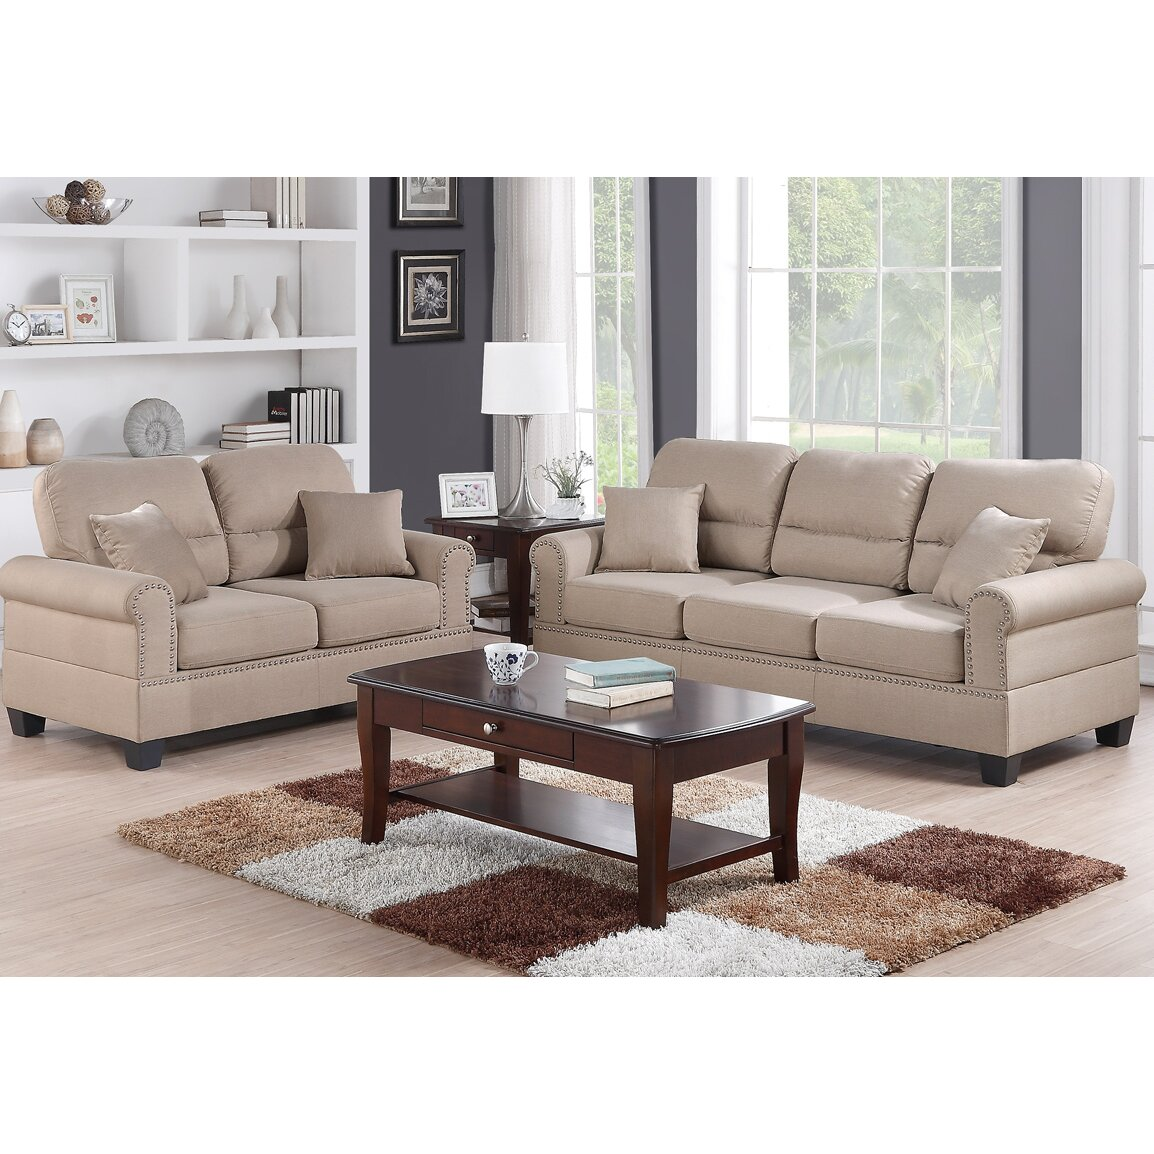 Poundex bobkona shelton sofa and loveseat set reviews for Drawing room furniture set